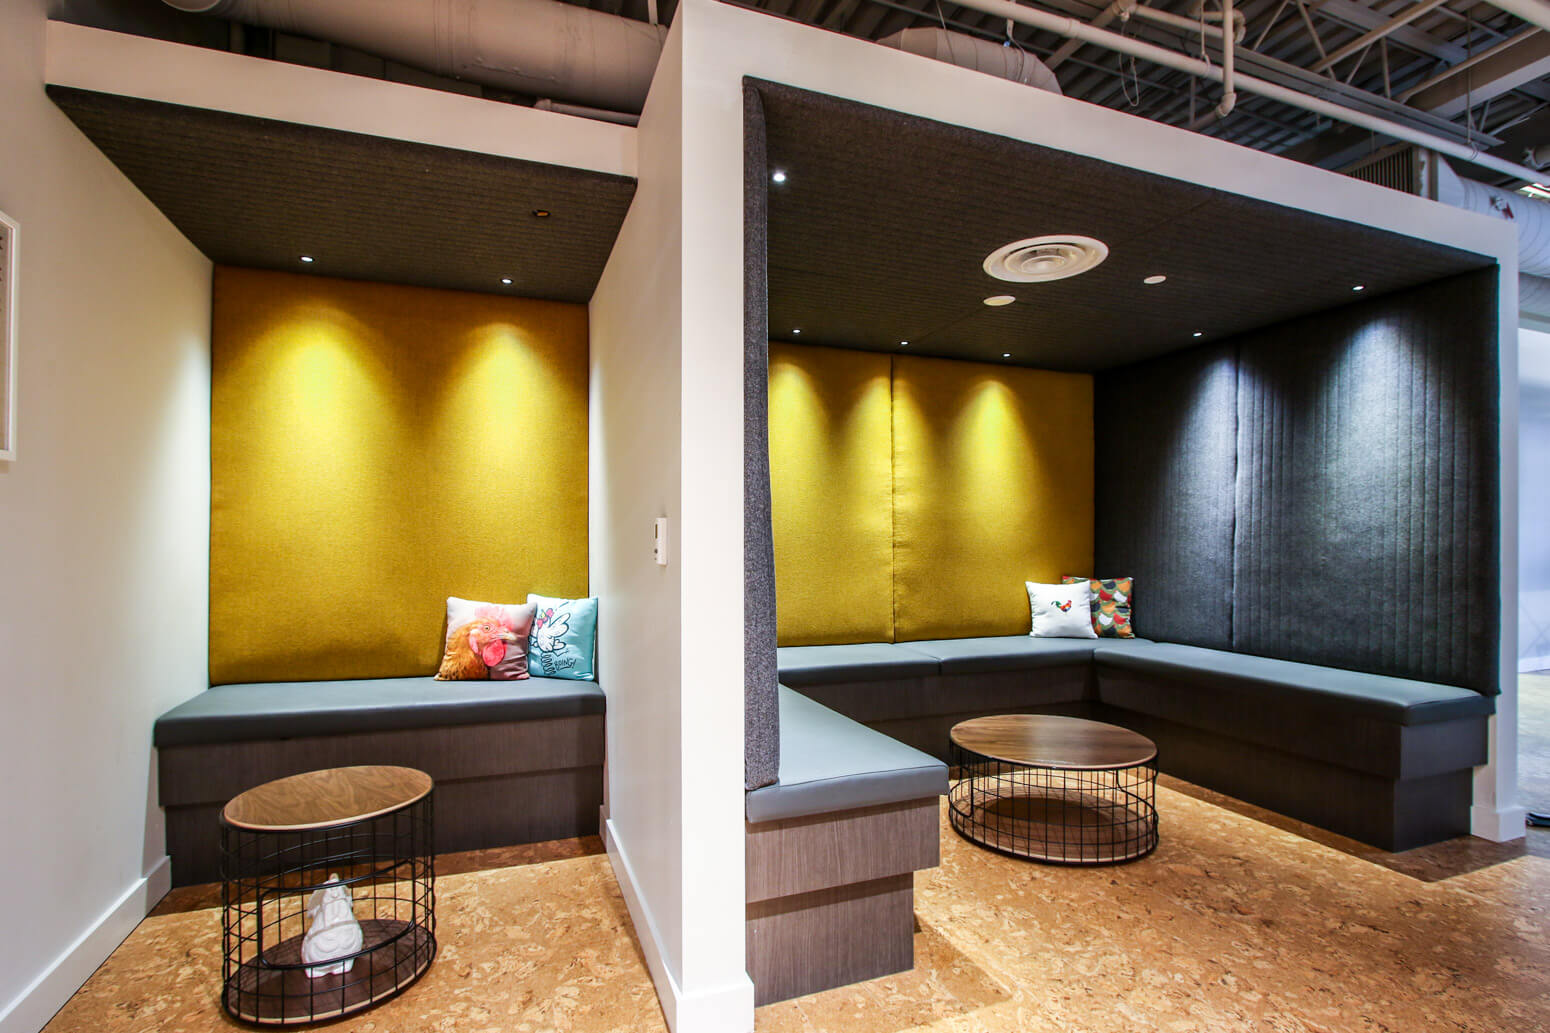 Shopify Waterloo Office Killer Spaces-27